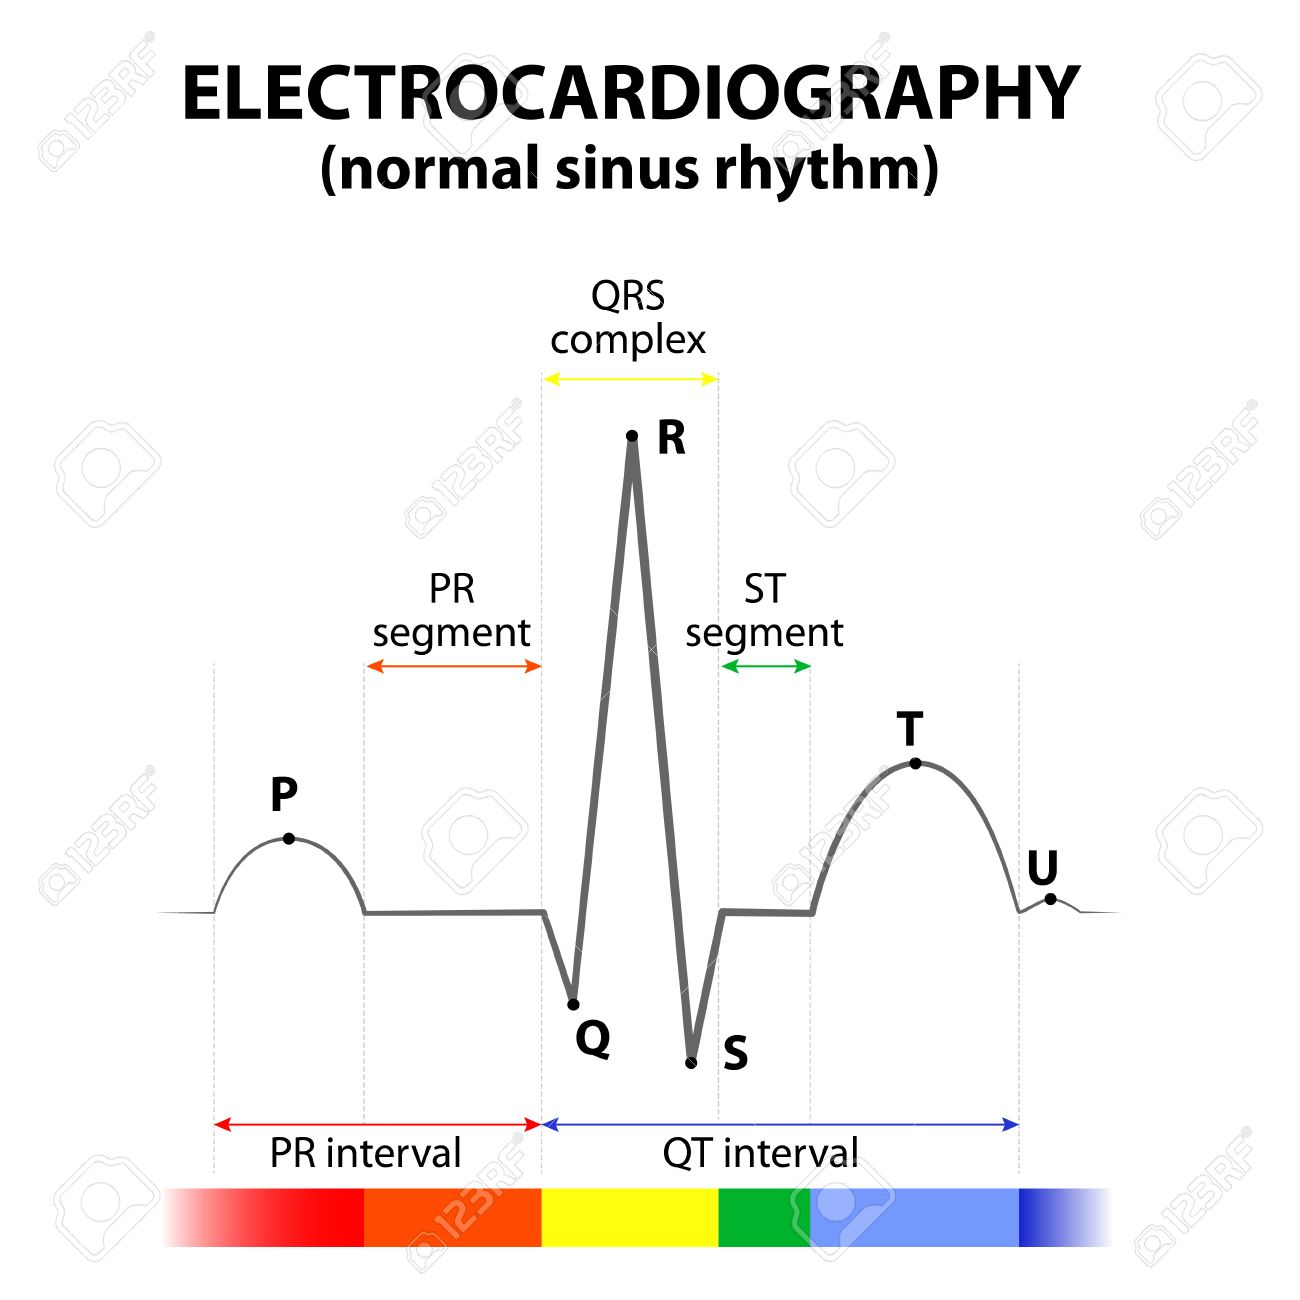 hight resolution of ecg of a heart in normal sinus rhythm schematic representation wave and segment names